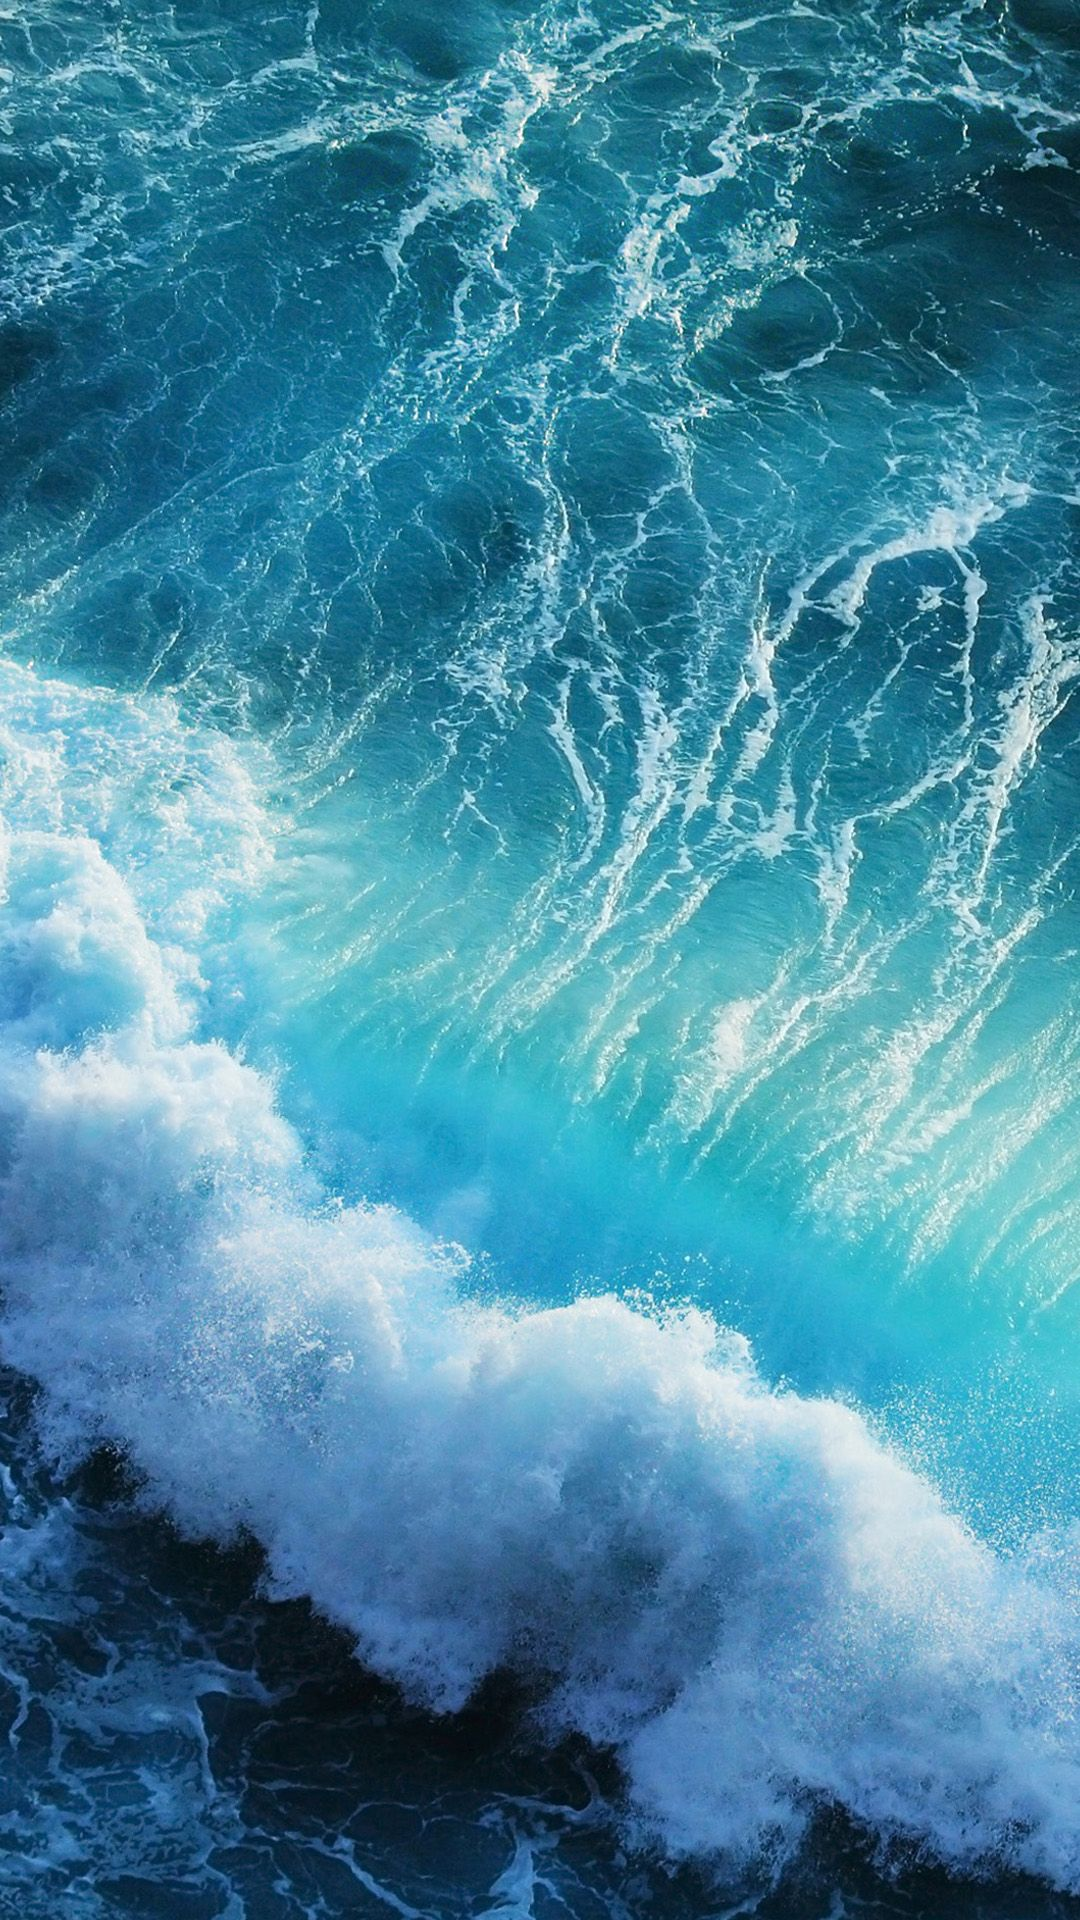 Blue Sea Water Wallpapers For Iphone 6 Plus Iphone 6 Plus Wallpaper Waves Wallpaper Iphone 6 Wallpaper Backgrounds Iphone 6s Wallpaper